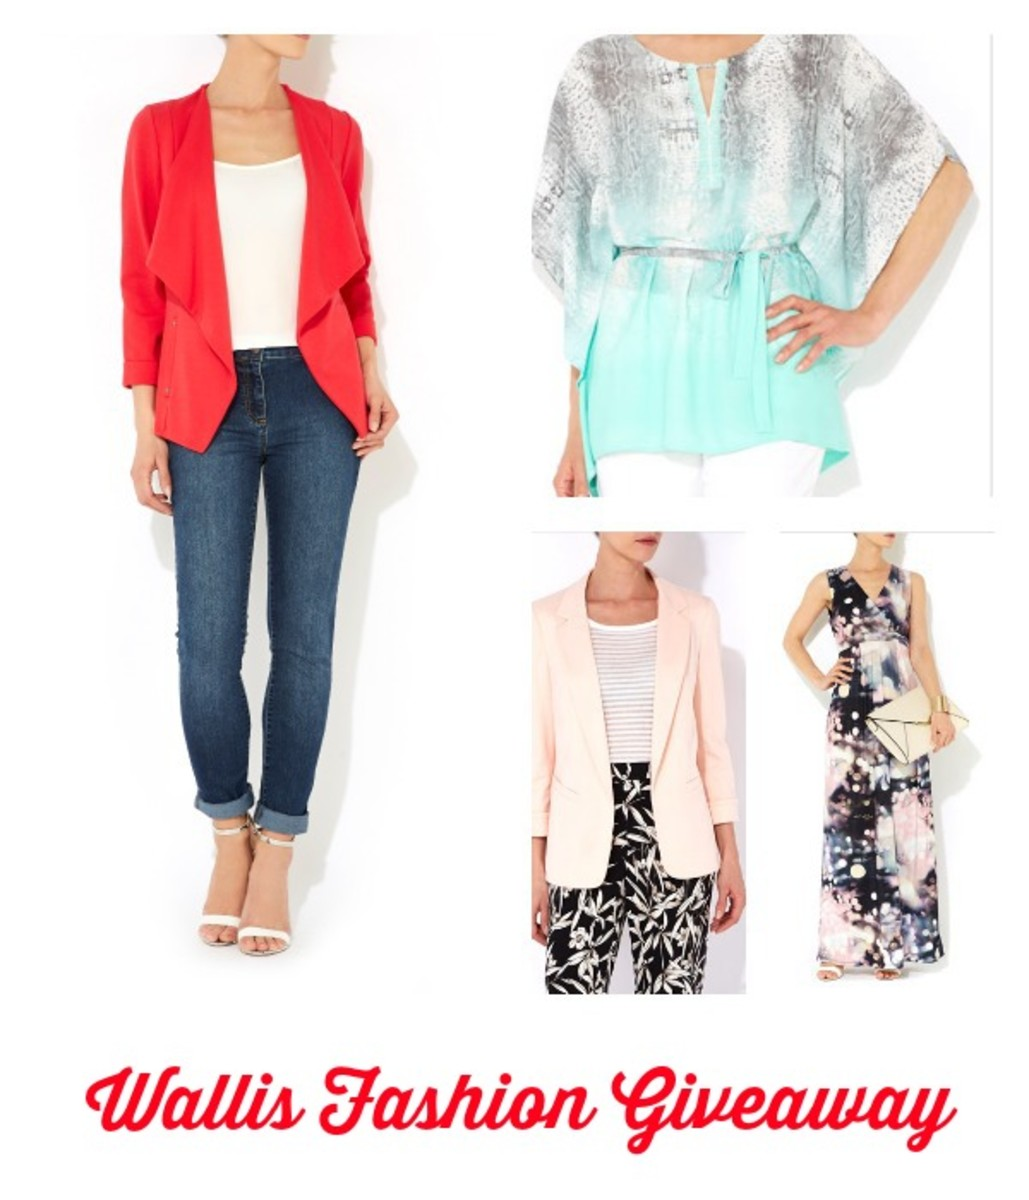 Wallis Fashion Giveaway.jpg.jpg